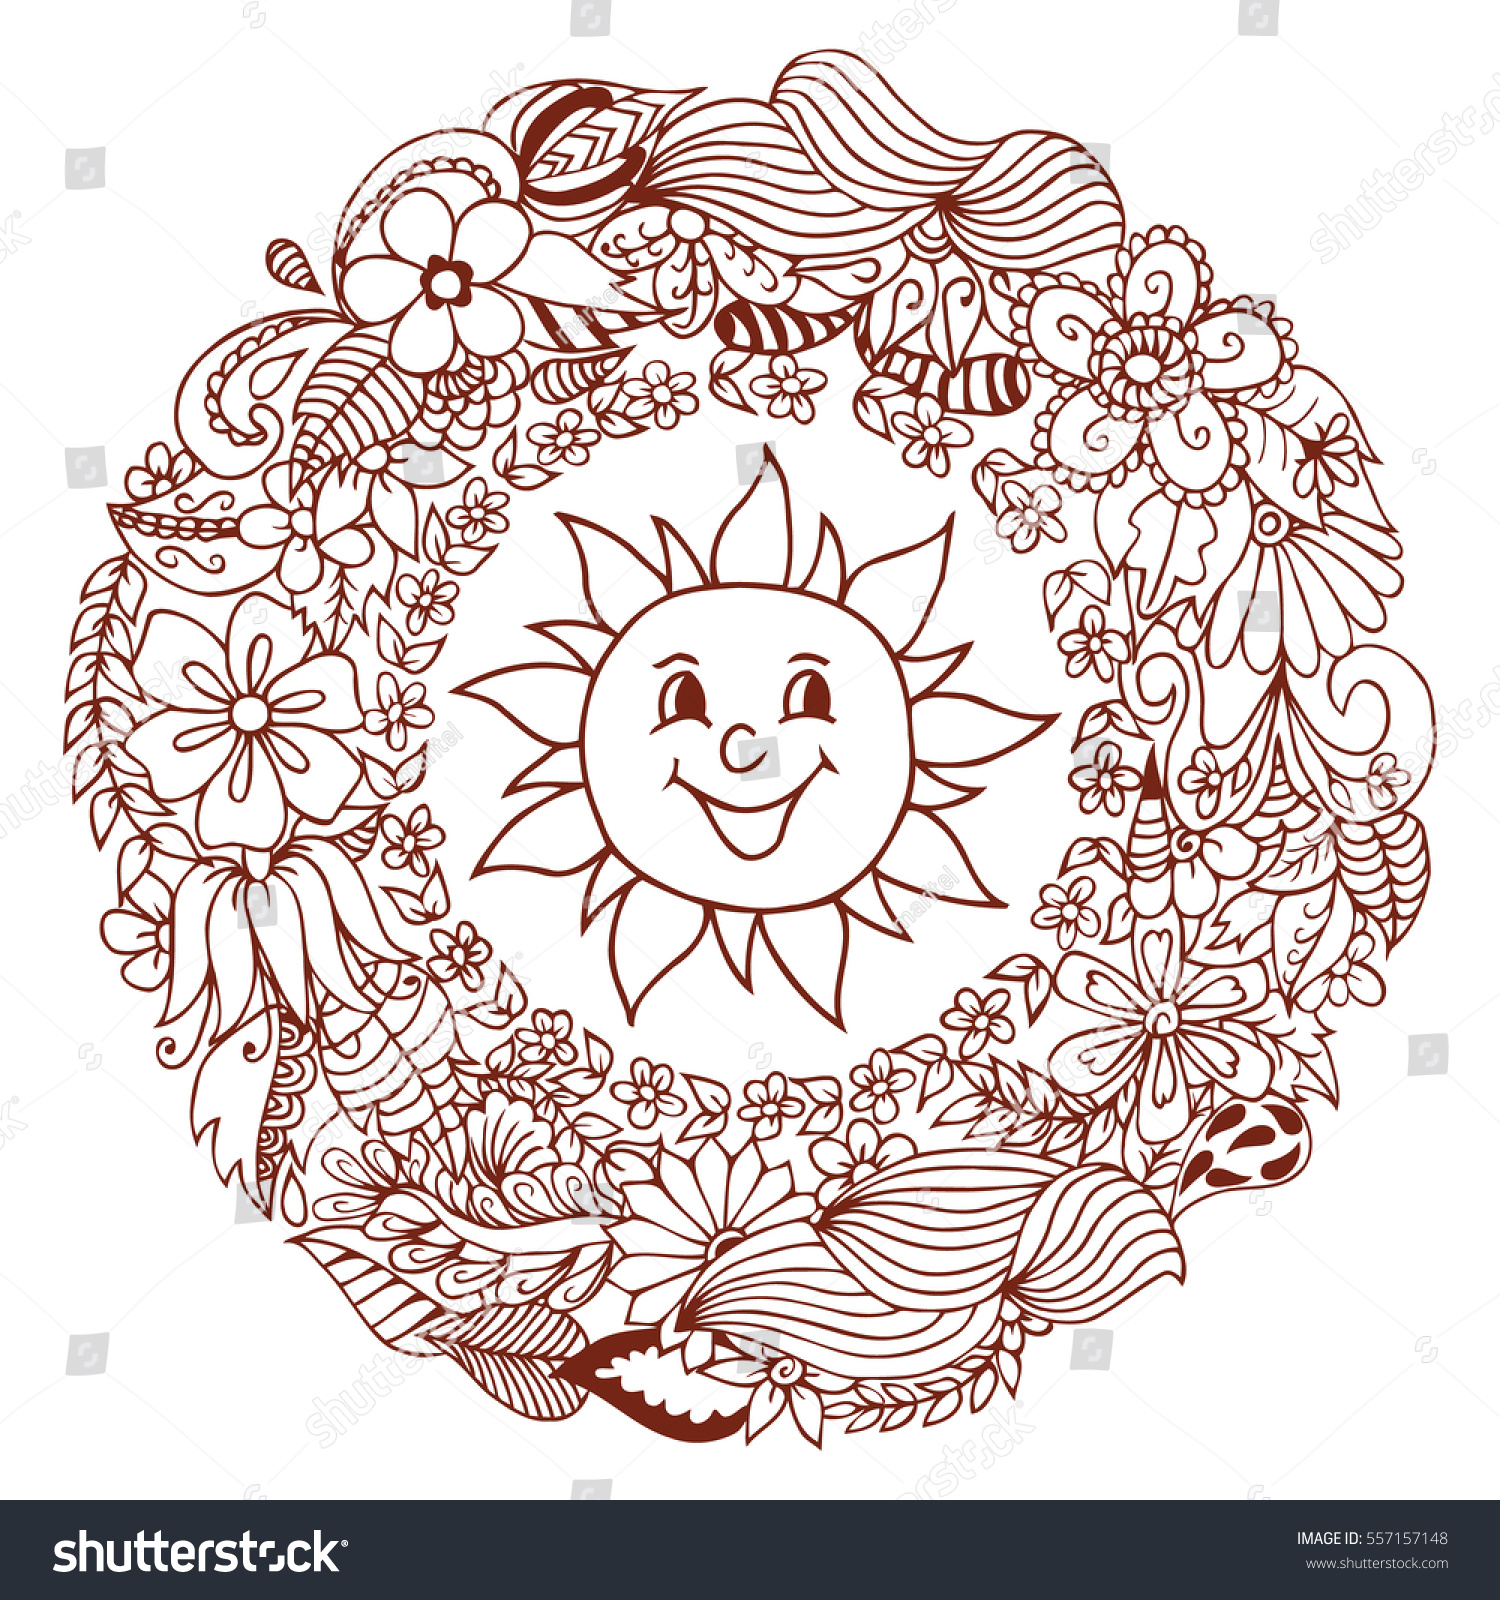 Do anti stress colouring books work - Do Anti Stress Colouring Books Work Vector Illustration Merry Sun In Frame From Flowers Work